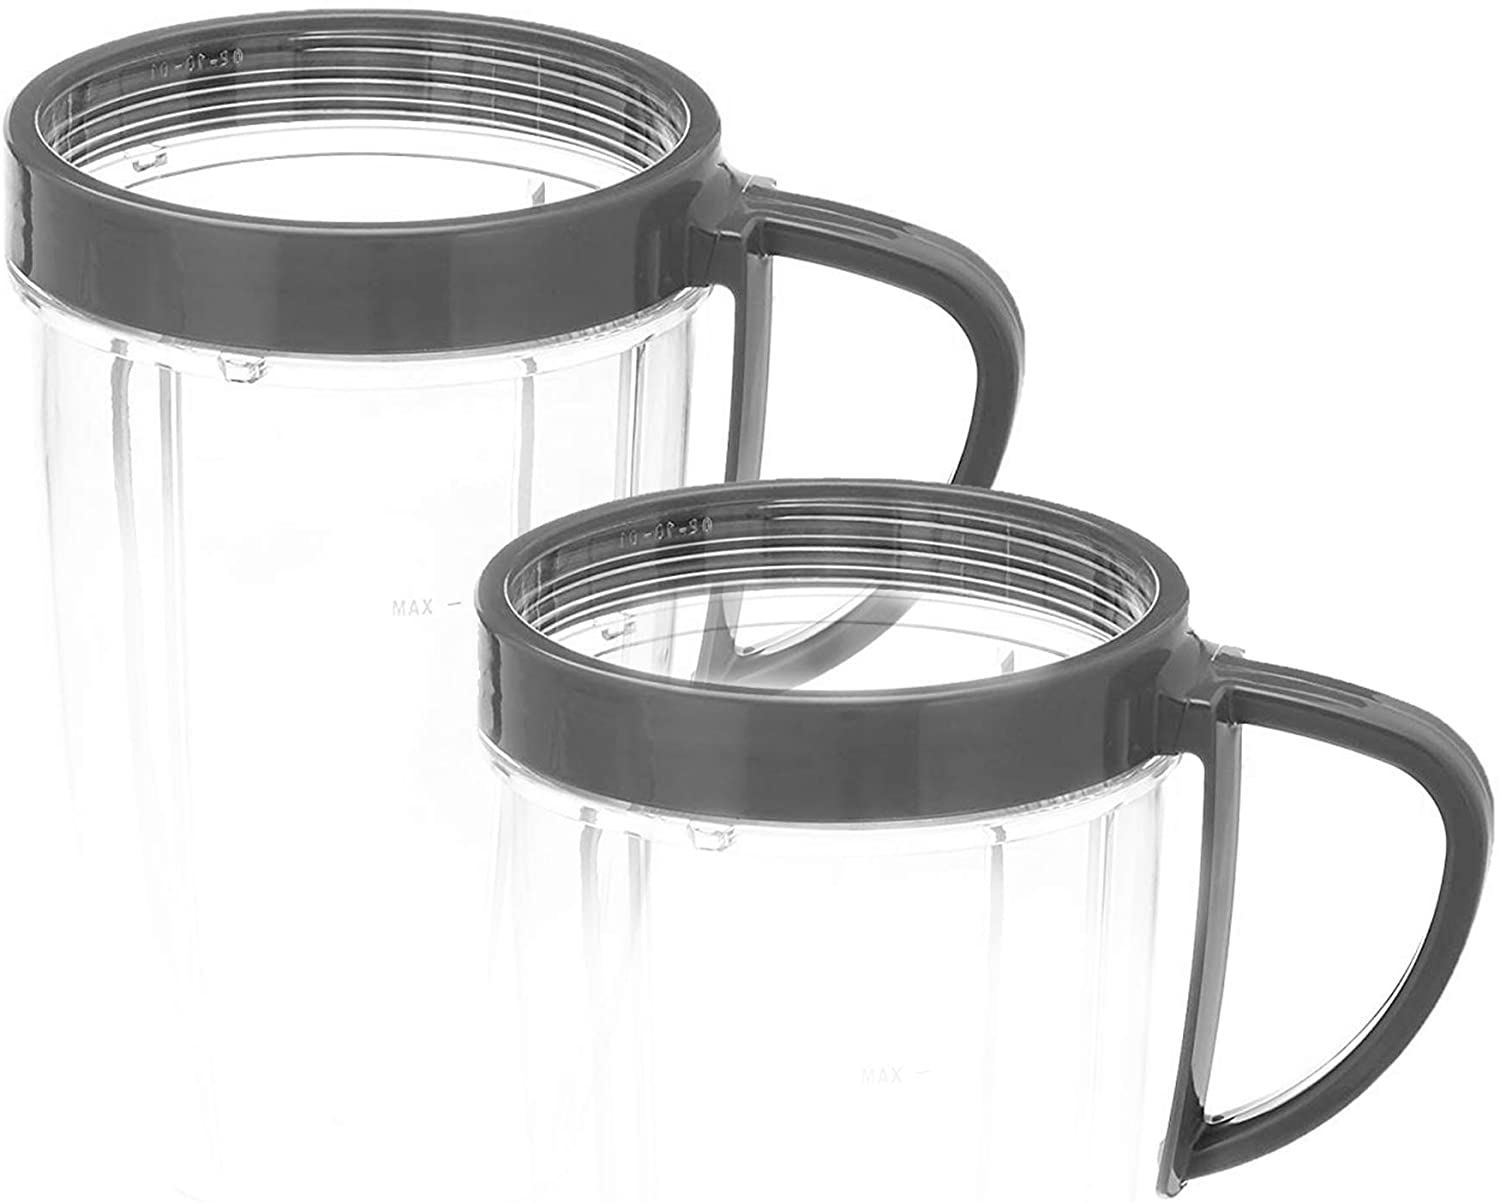 NutriBullet Lip Ring with Handle (set of 2).25 Lbs, Grey